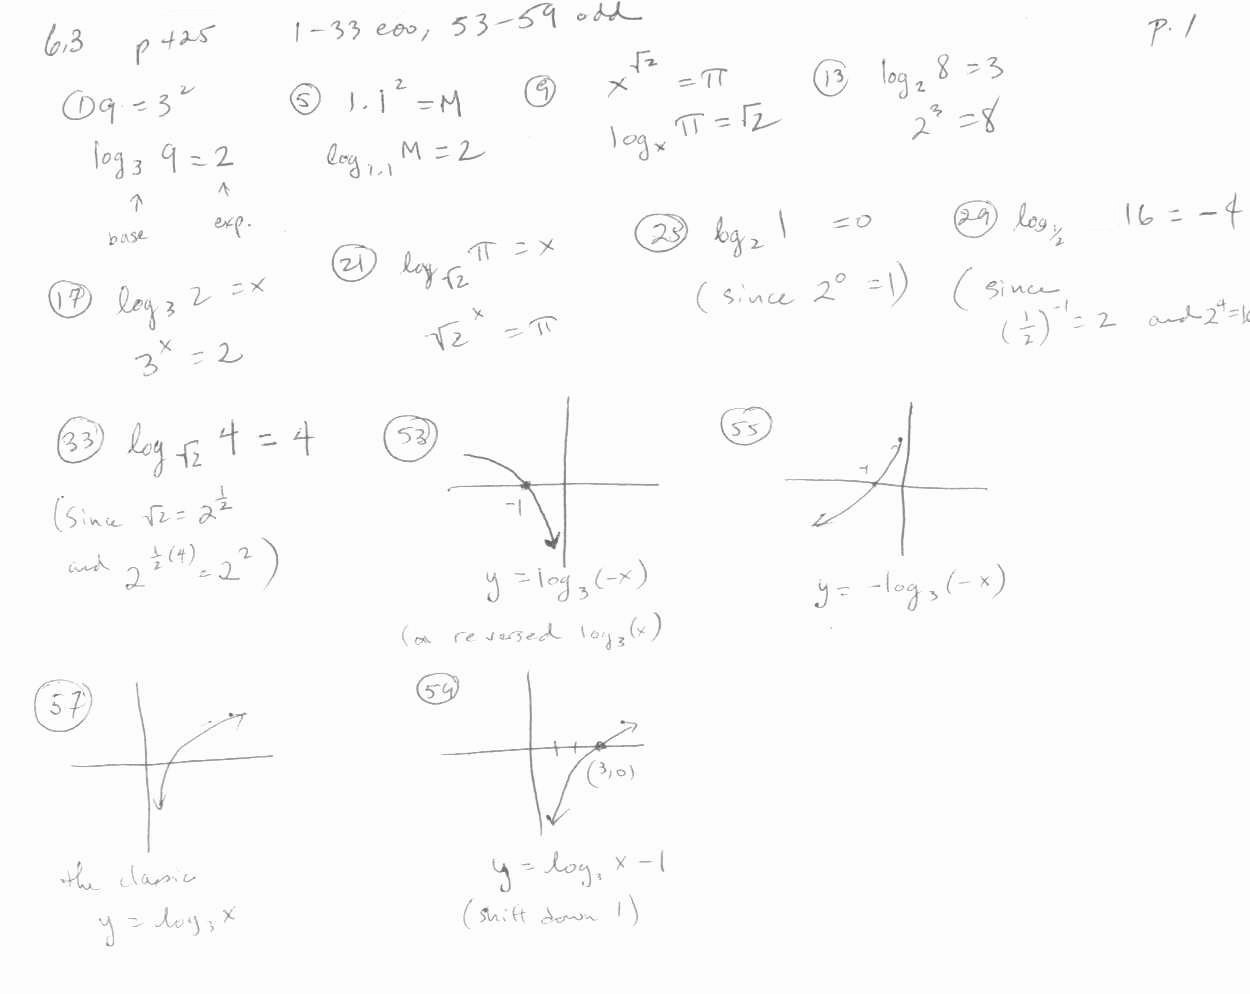 Inverse Functions Worksheet with Answers Awesome Worksheet 74 Inverse Functions Answer Key